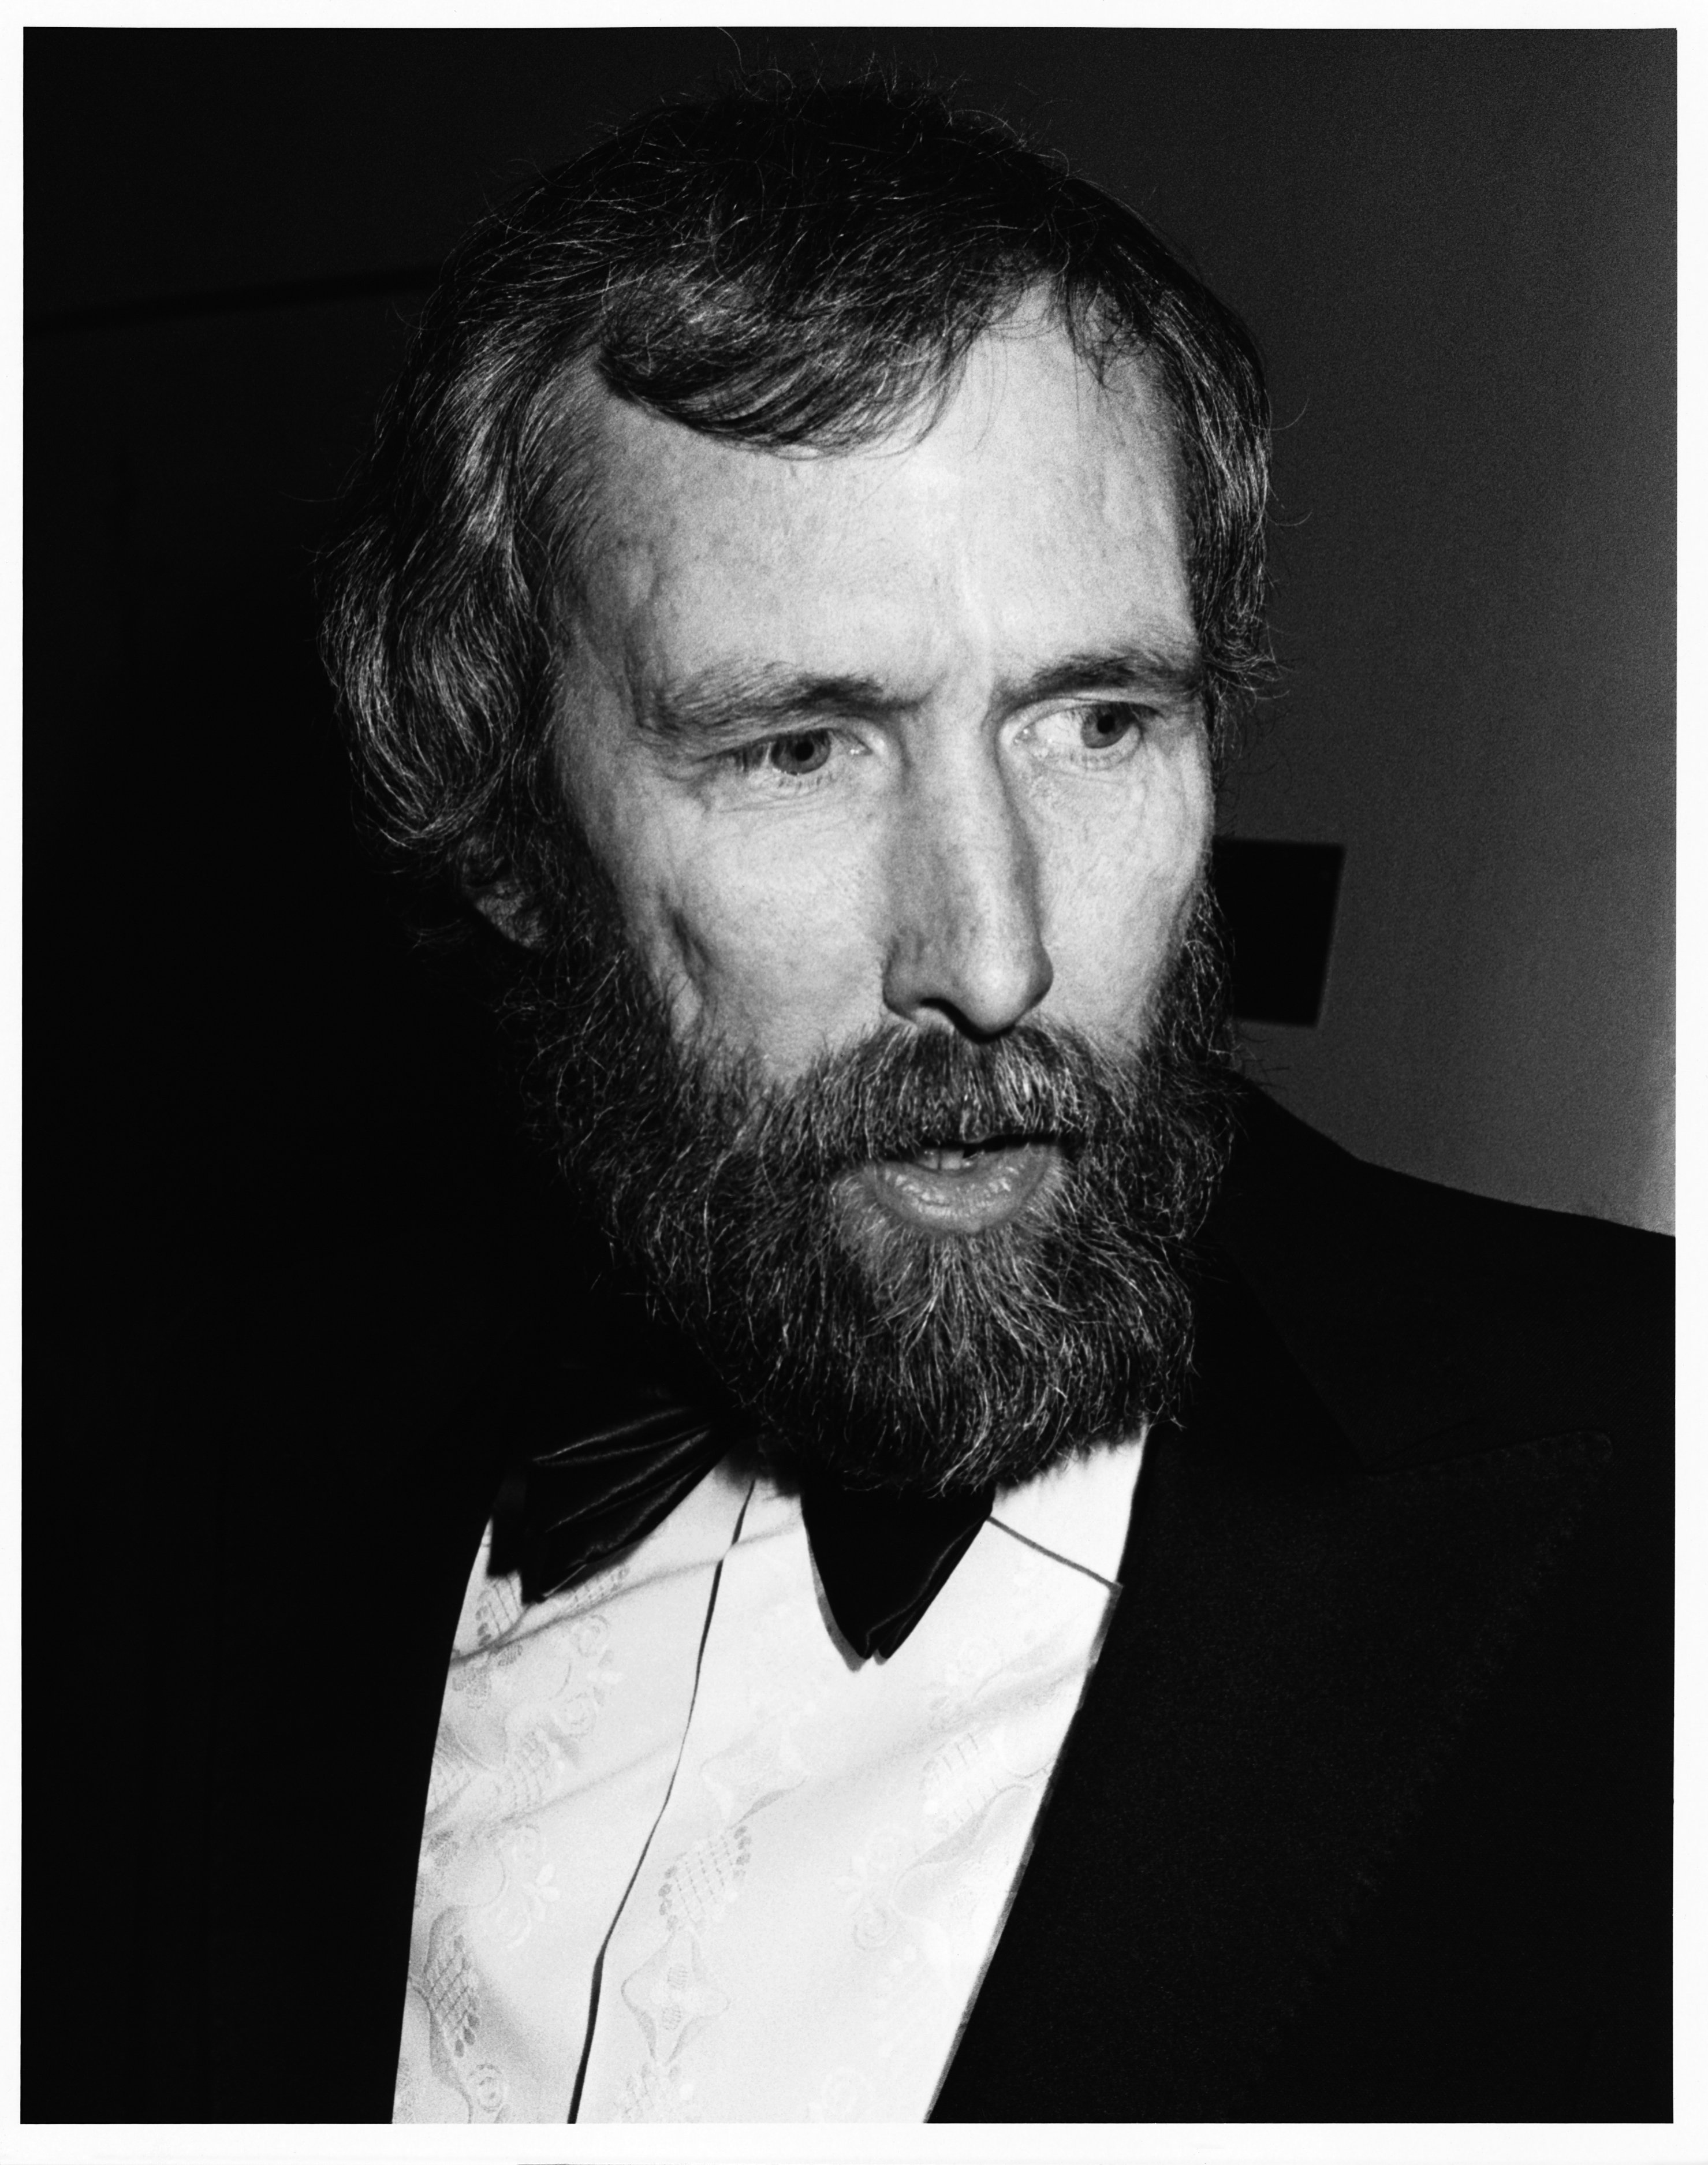 """Jim Henson (1936-1990), the American puppeteer and creator of the the """"Muppets"""" and Sesame Street attends the 1985 British Academy of Film and Television Arts (BAFTA) award ceremony. Source: Getty Images"""